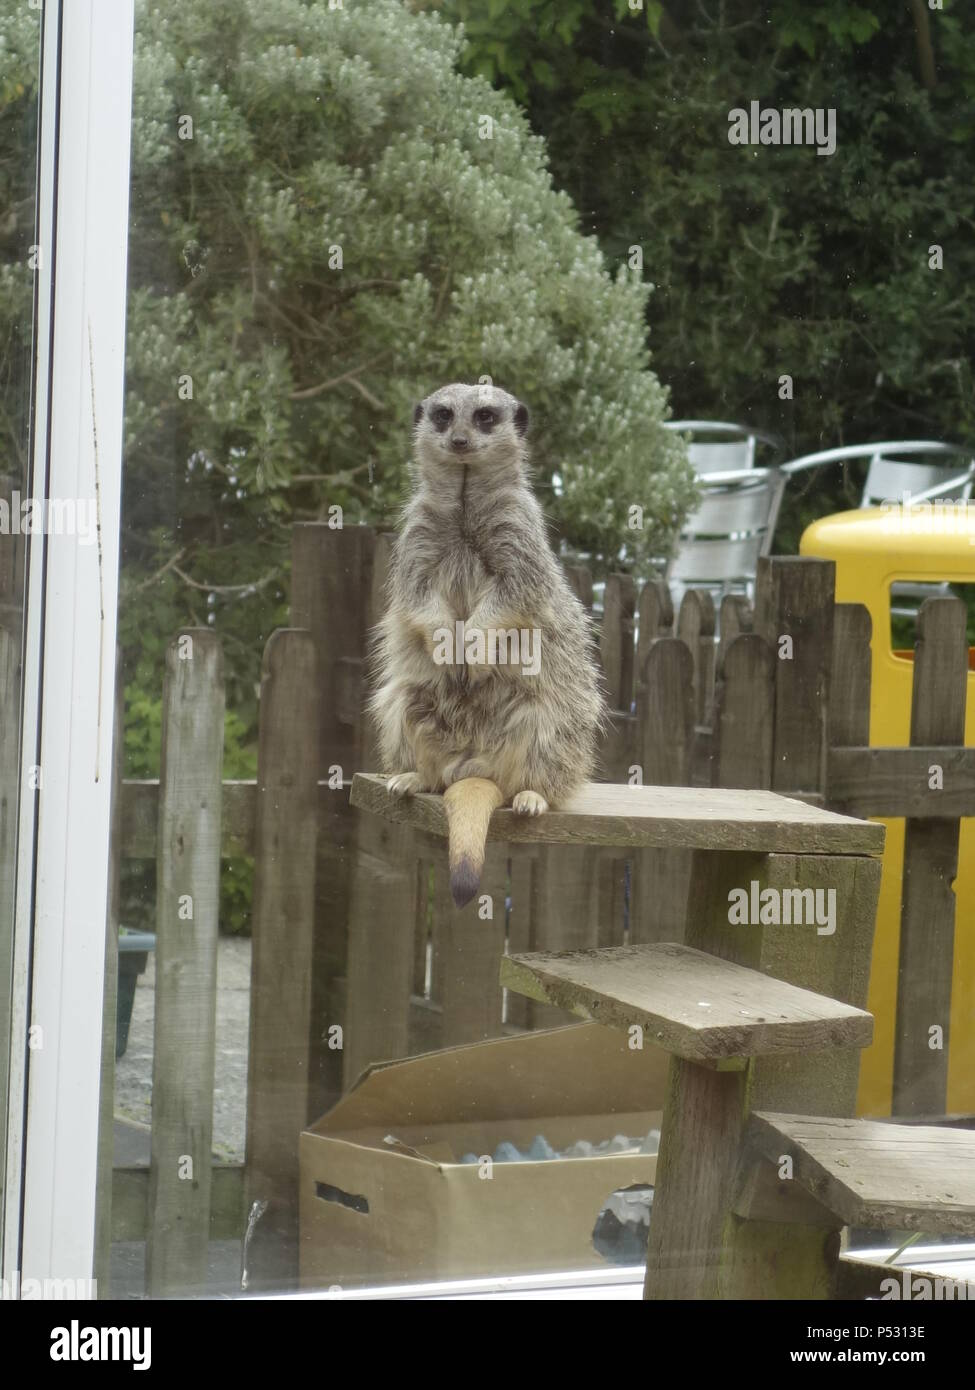 A meerkat in captivity - Stock Image